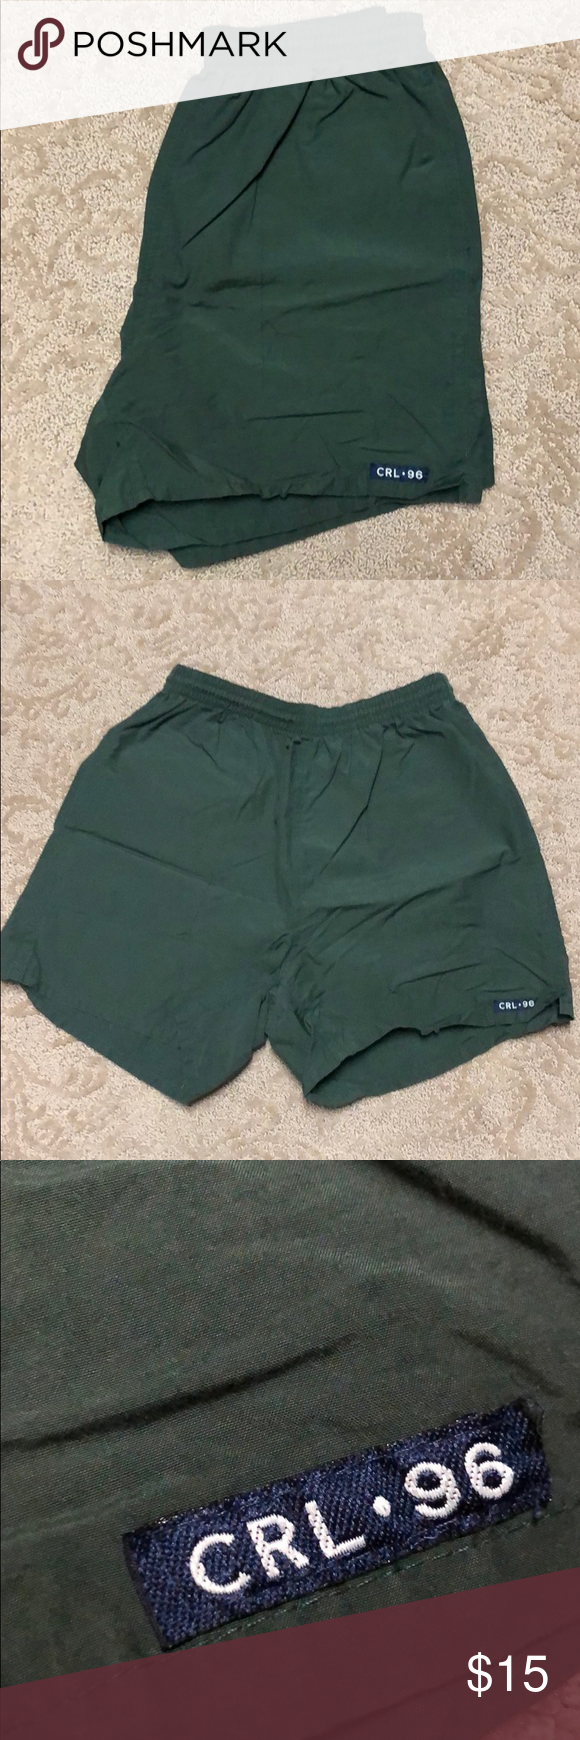 748111657e Chaps Ralph Lauren Above the Knees Swim Trunks VINTAGE Dark Green Size  Small 60% Cotton